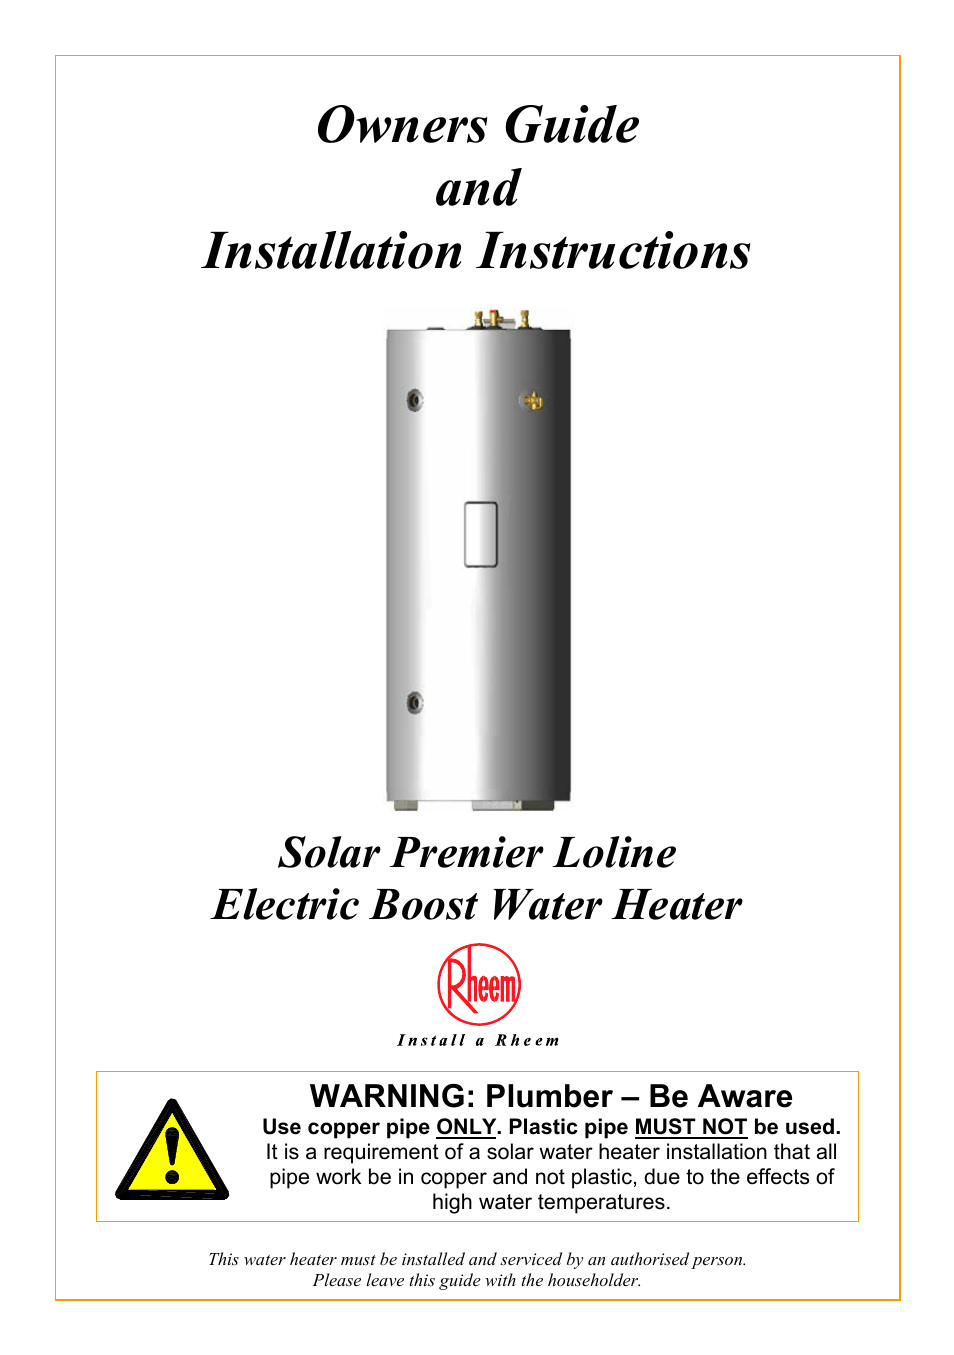 Rheem Water Heater Manual : rheem, water, heater, manual, Rheem, Water, Heater, Manual, Pages